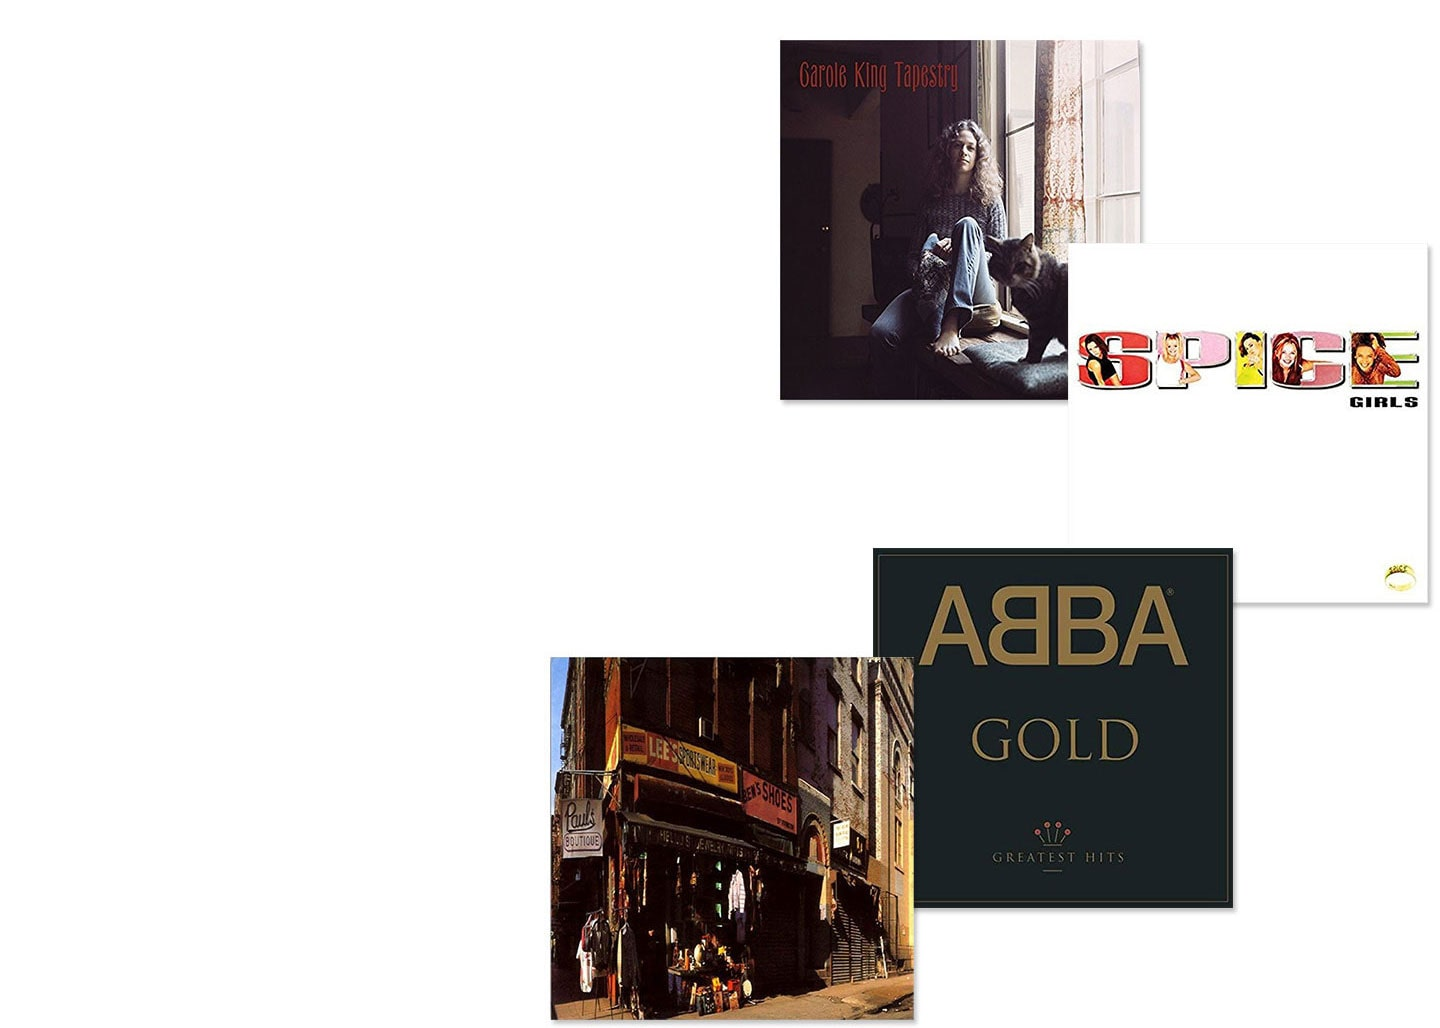 Album covers of Carole King Tapestry, Spice Girls Spice, ABBA Gold Greatest Hits and Beastie Boys Paul's Boutique